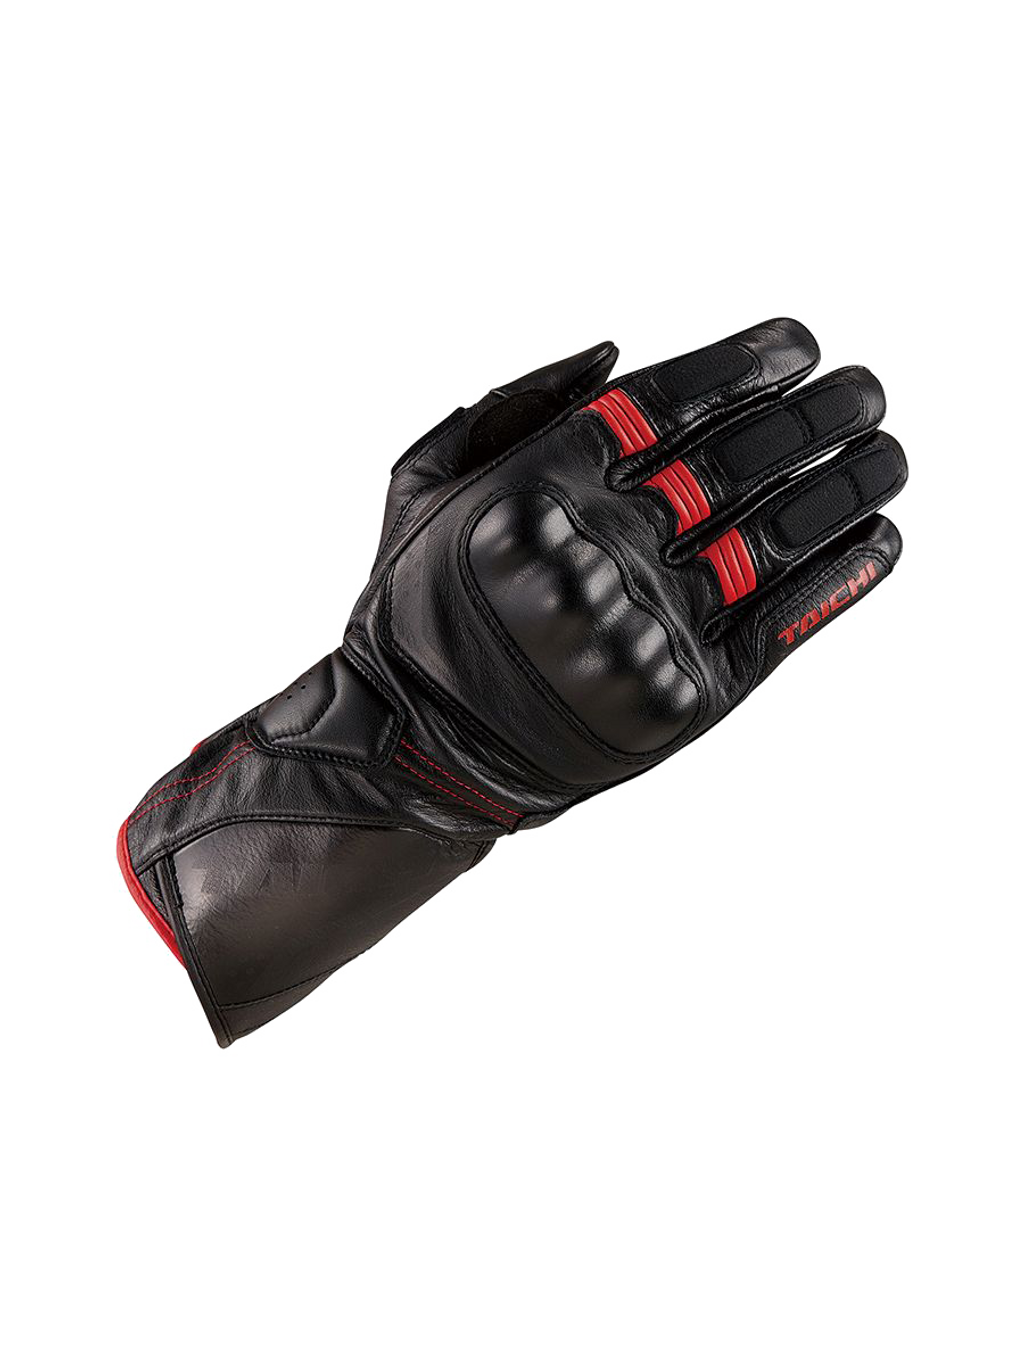 73 RS TAICHI RST453 CORSA LEATHER GLOVE black red.png